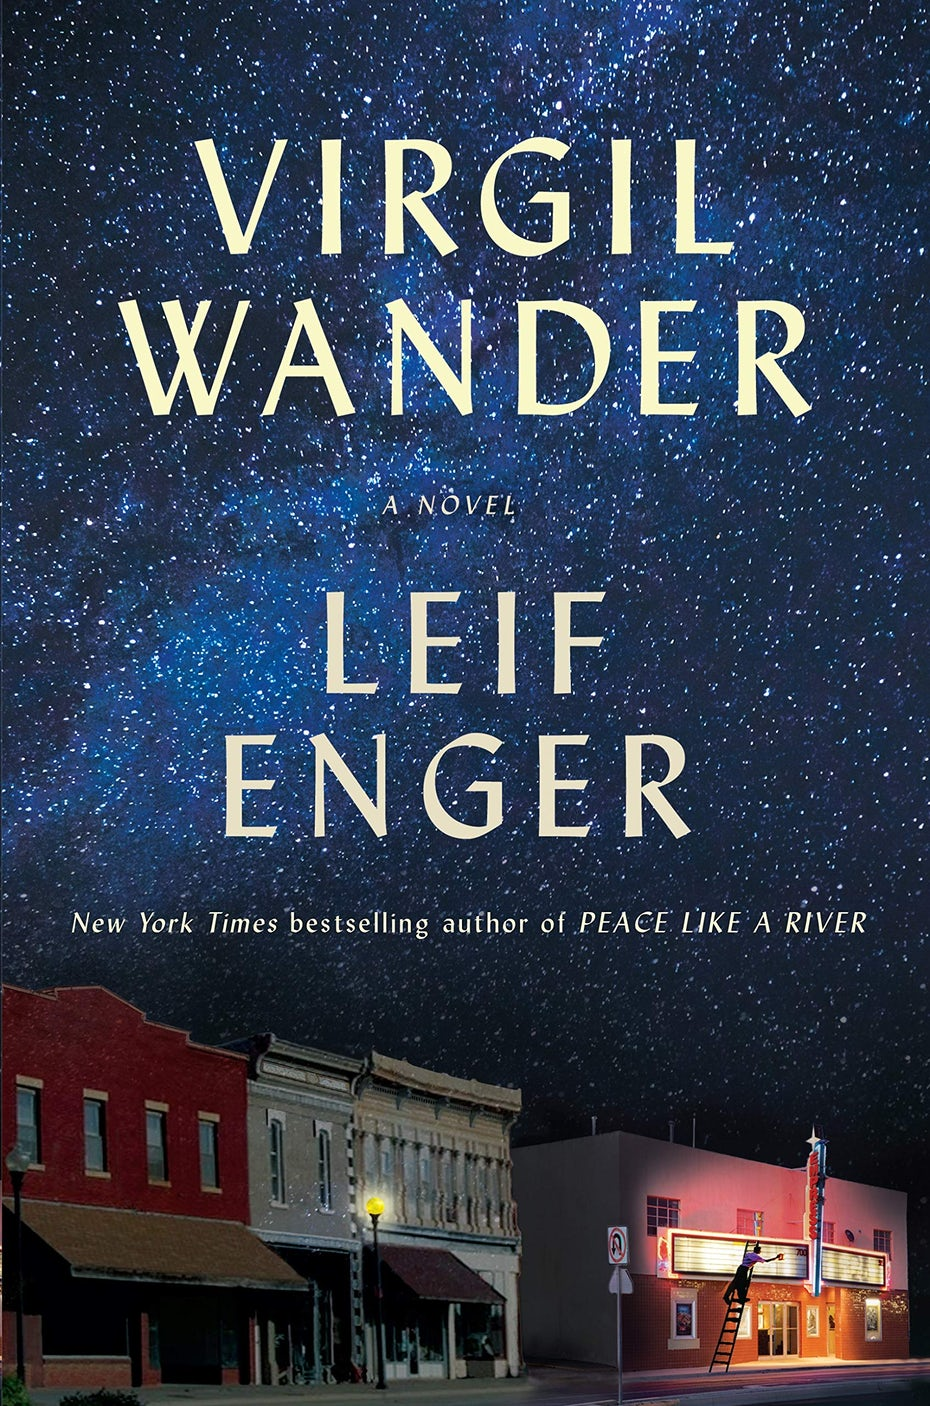 Virgil wander book cover